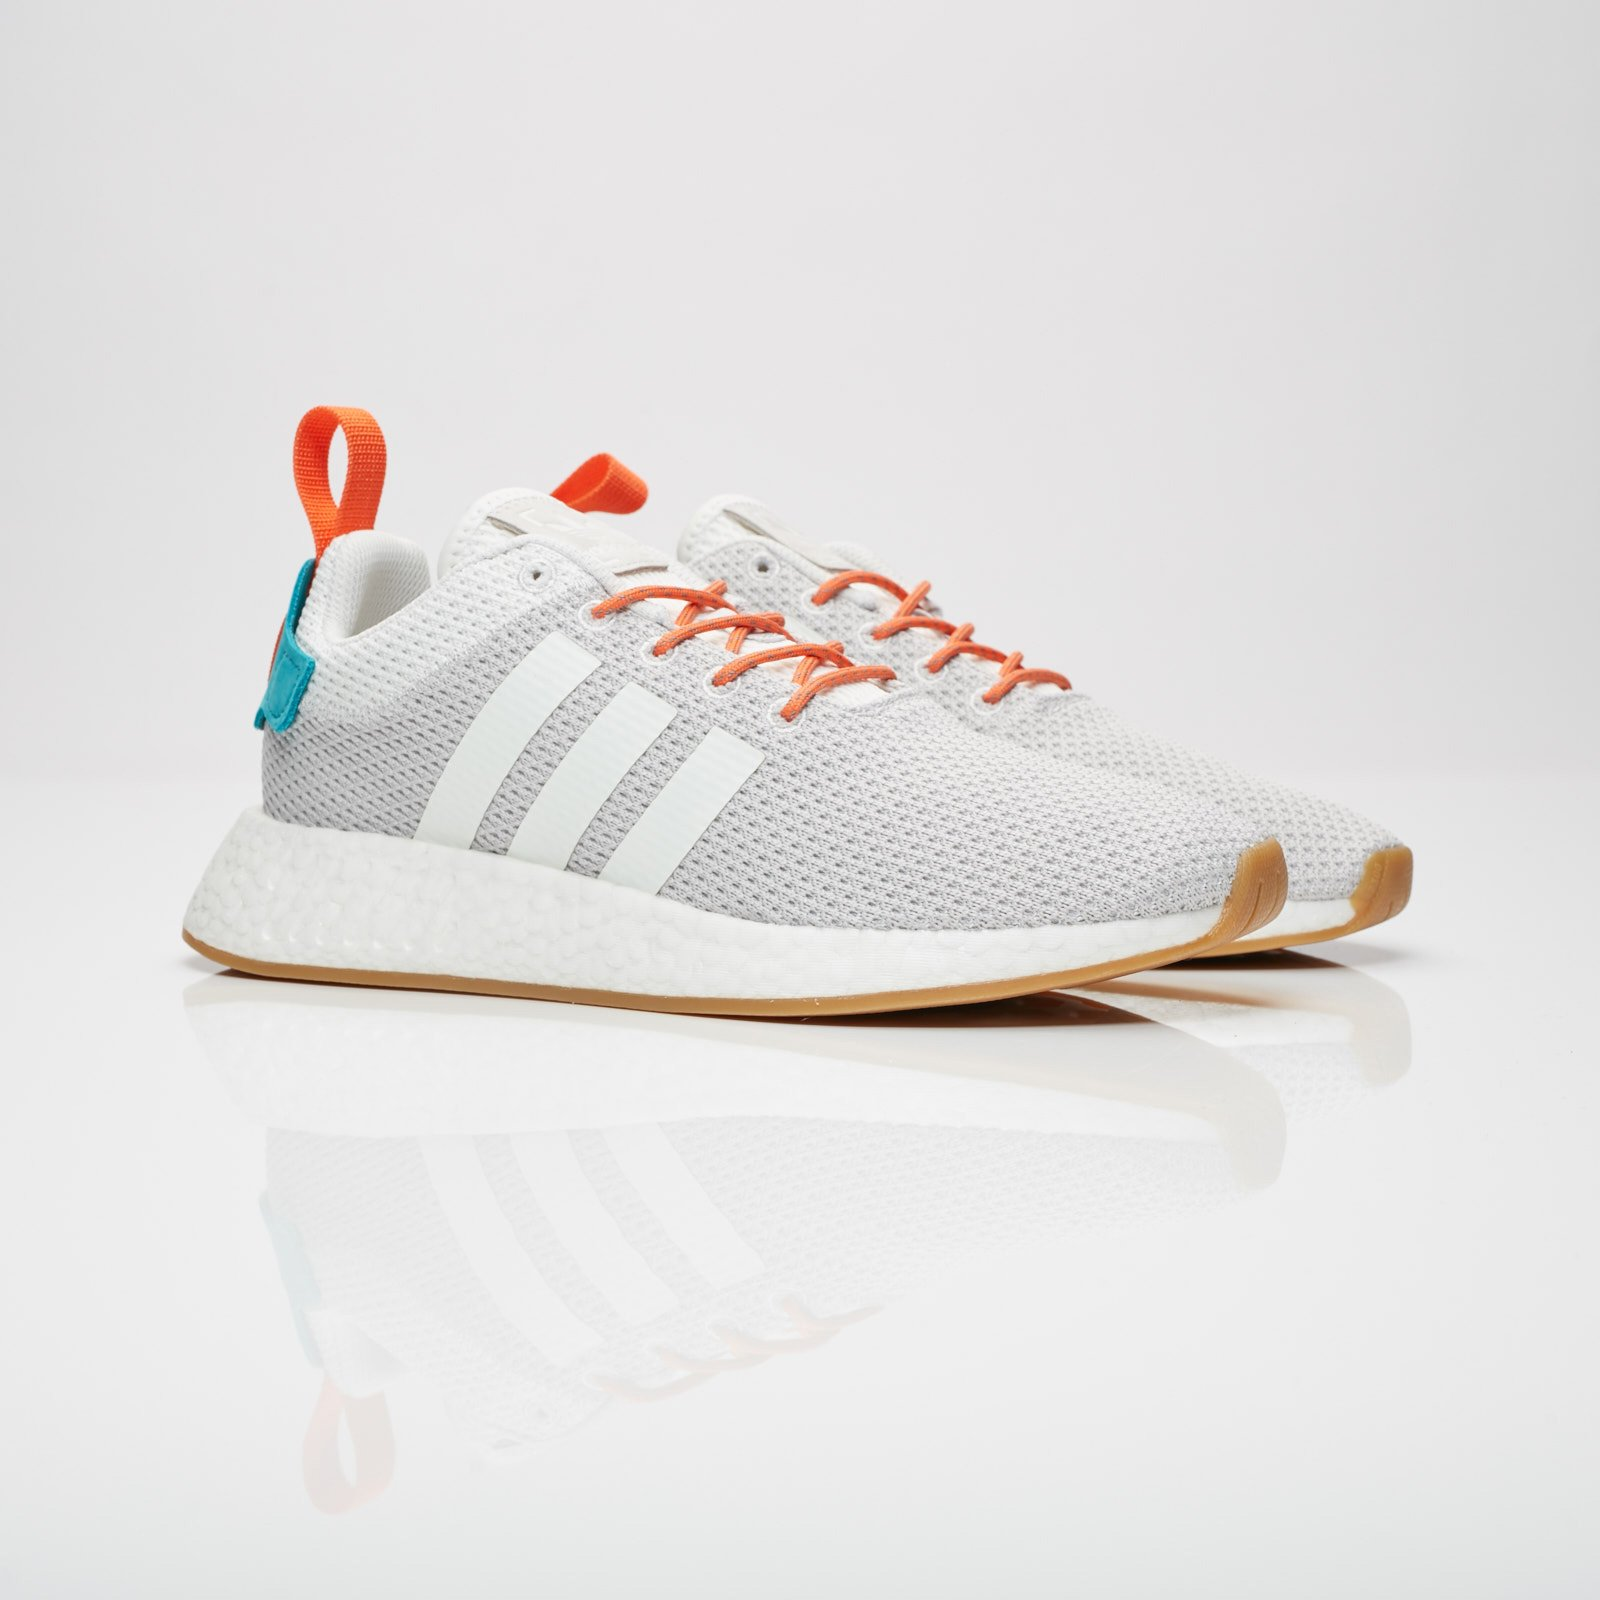 size 40 30695 deb8b adidas NMD R2 Summer - Cq3080 - Sneakersnstuff   sneakers ... adidas  originals nmd